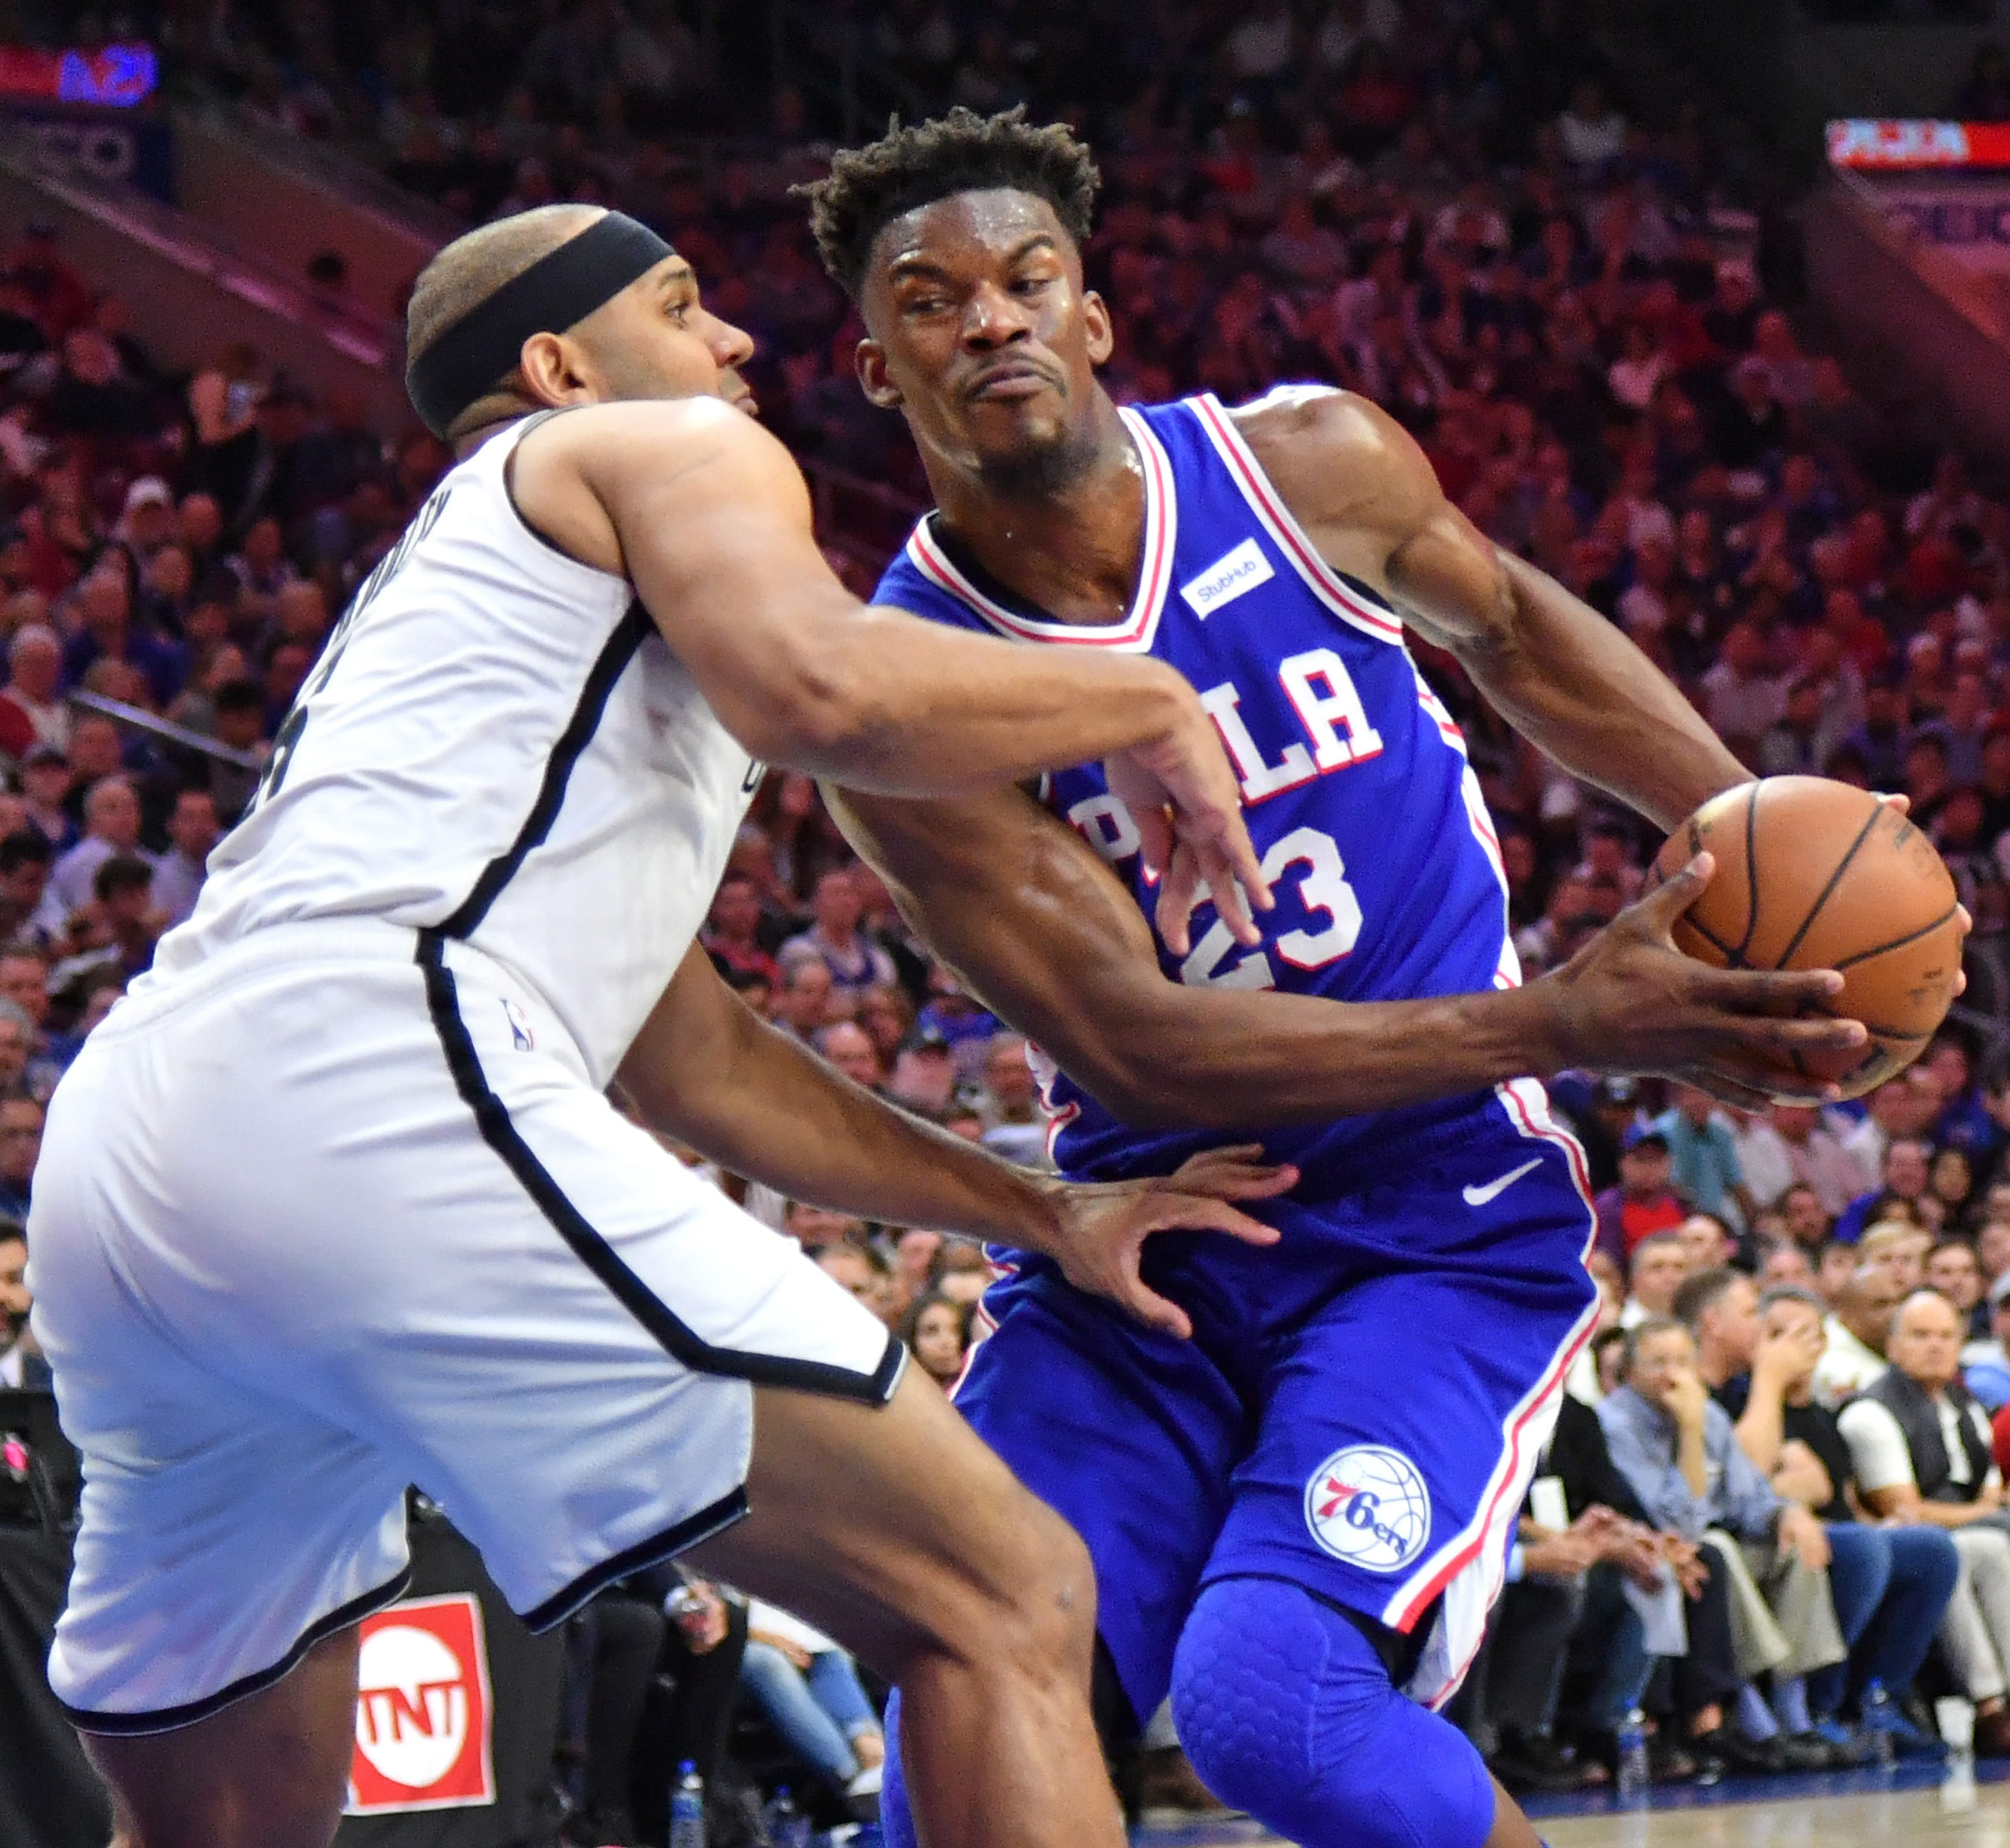 April 23:  Philadelphia 76ers guard Jimmy Butler drives to the basket against Brooklyn Nets forward Jared Dudley during Game 5 at Wells Fargo Center. The 76ers eliminated the Nets with a 122-100 win.